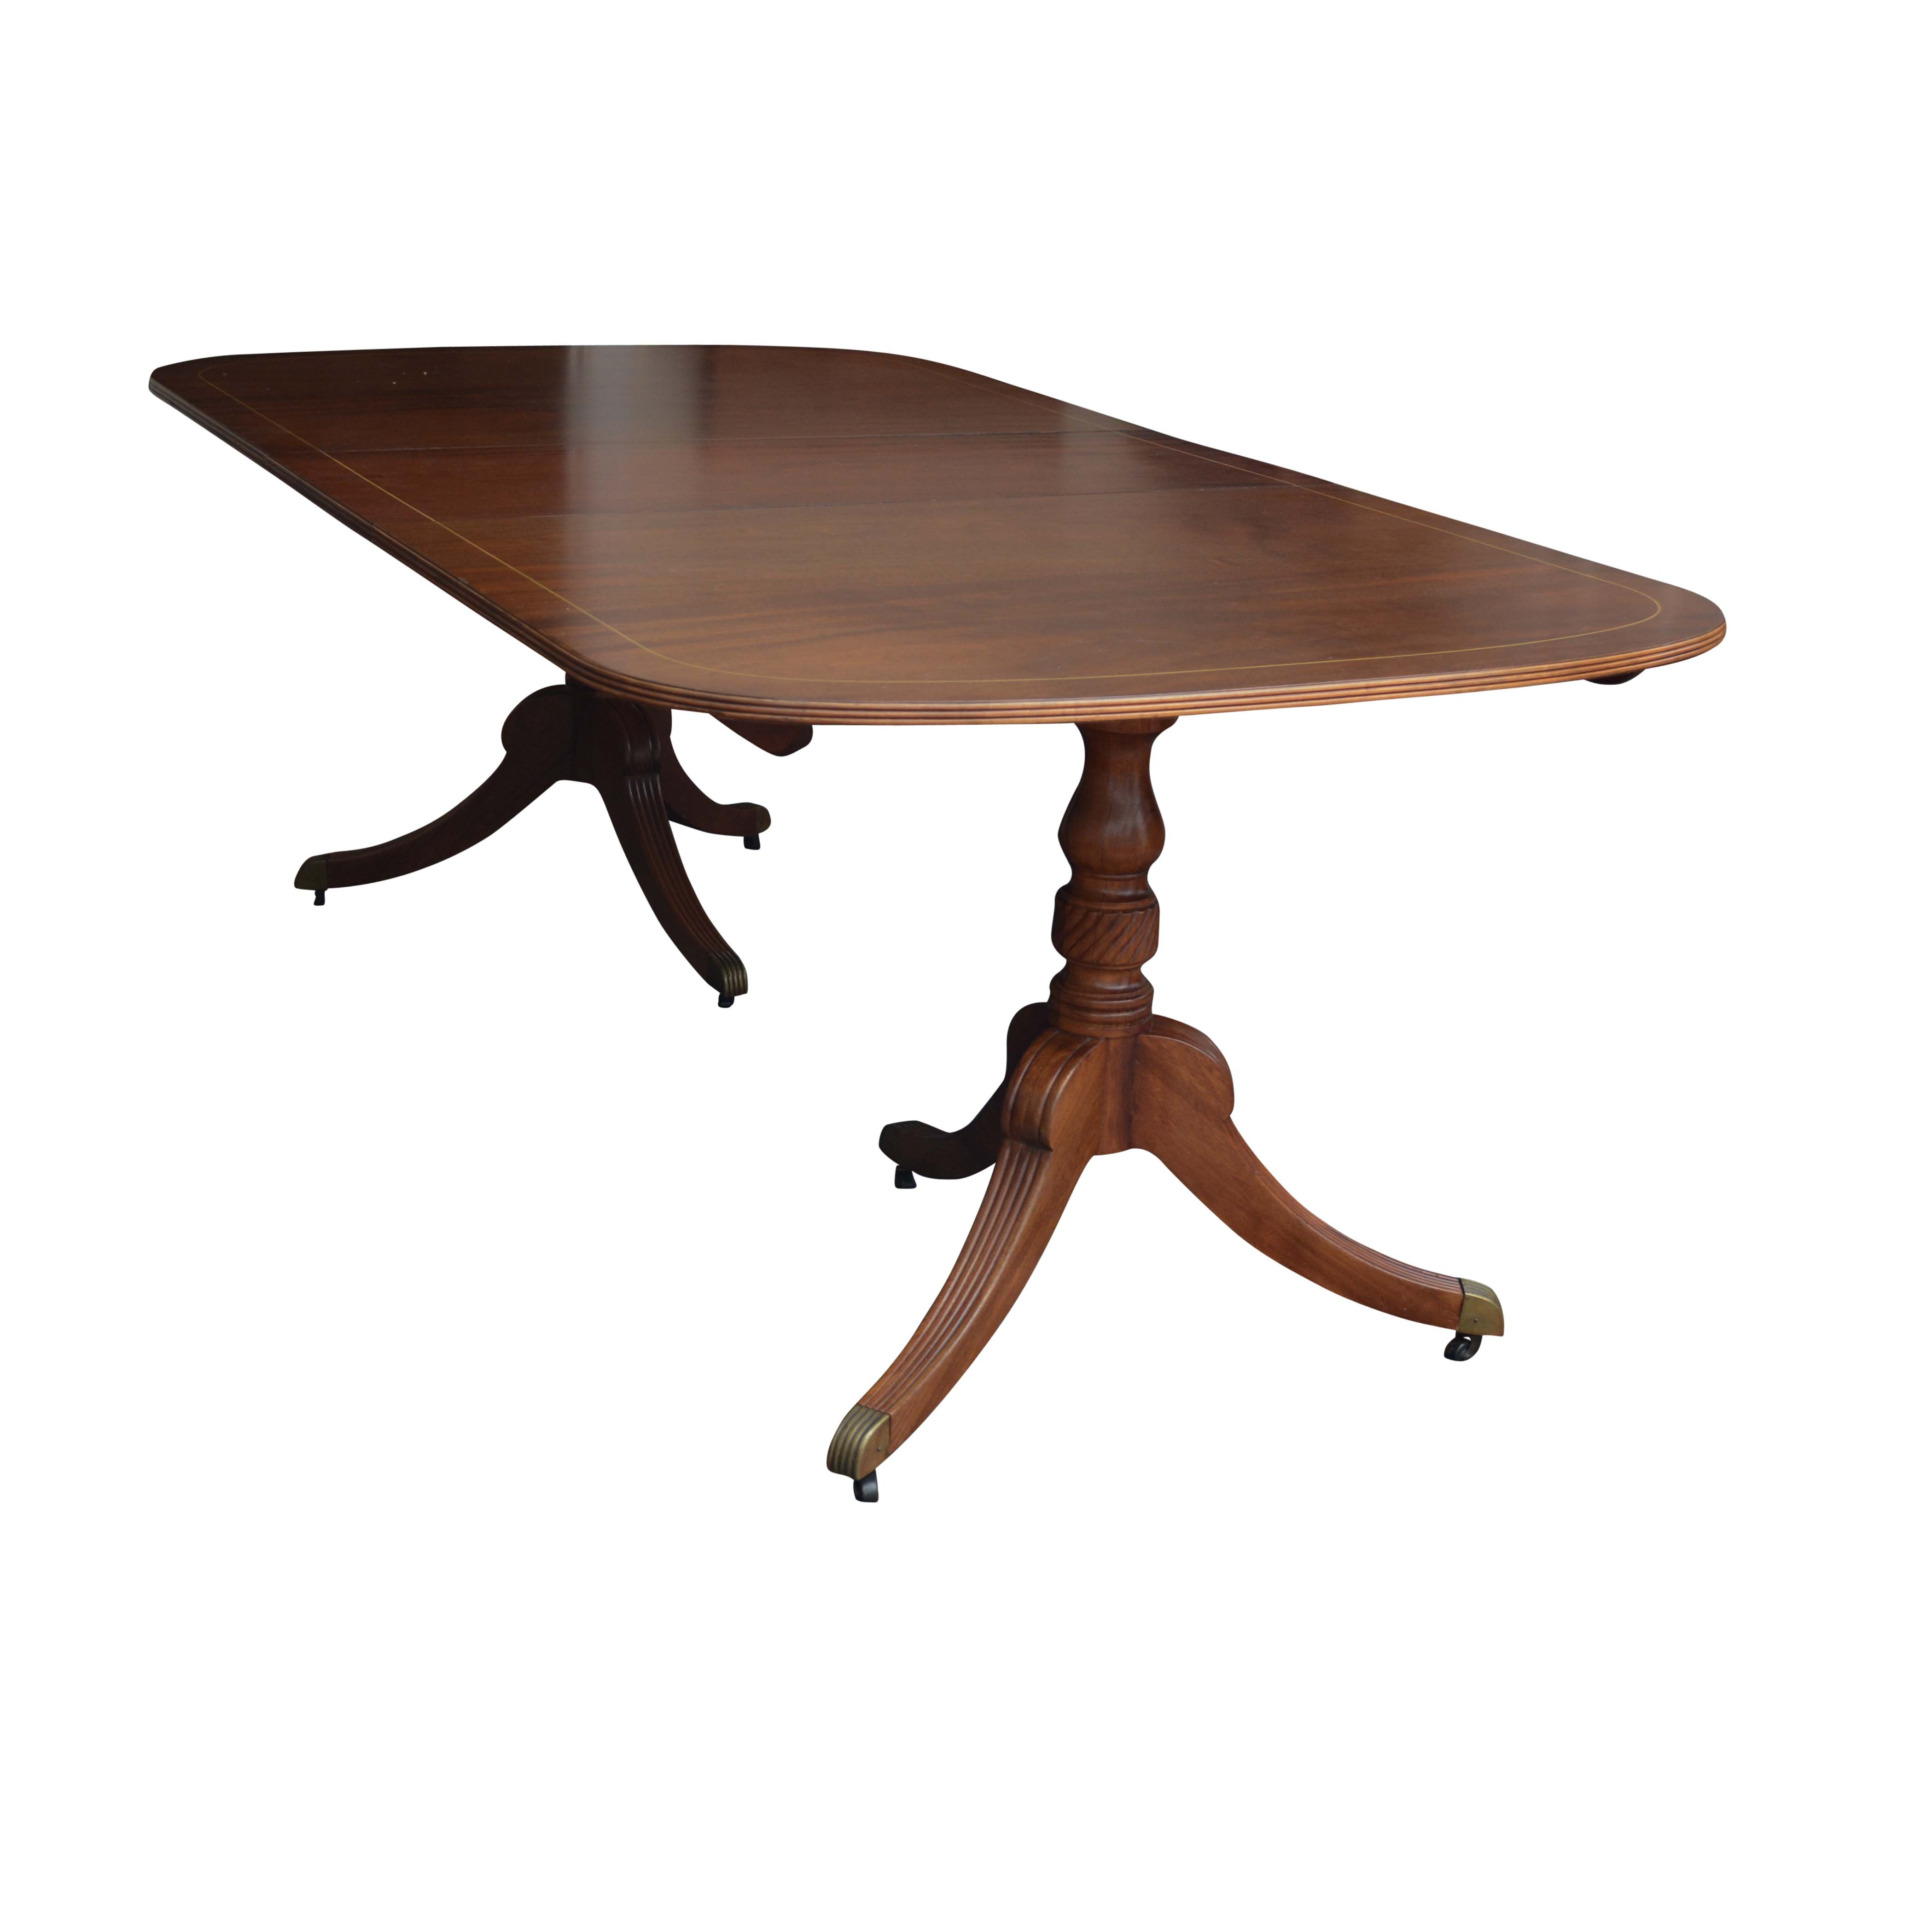 Phyfe Style Dining Table